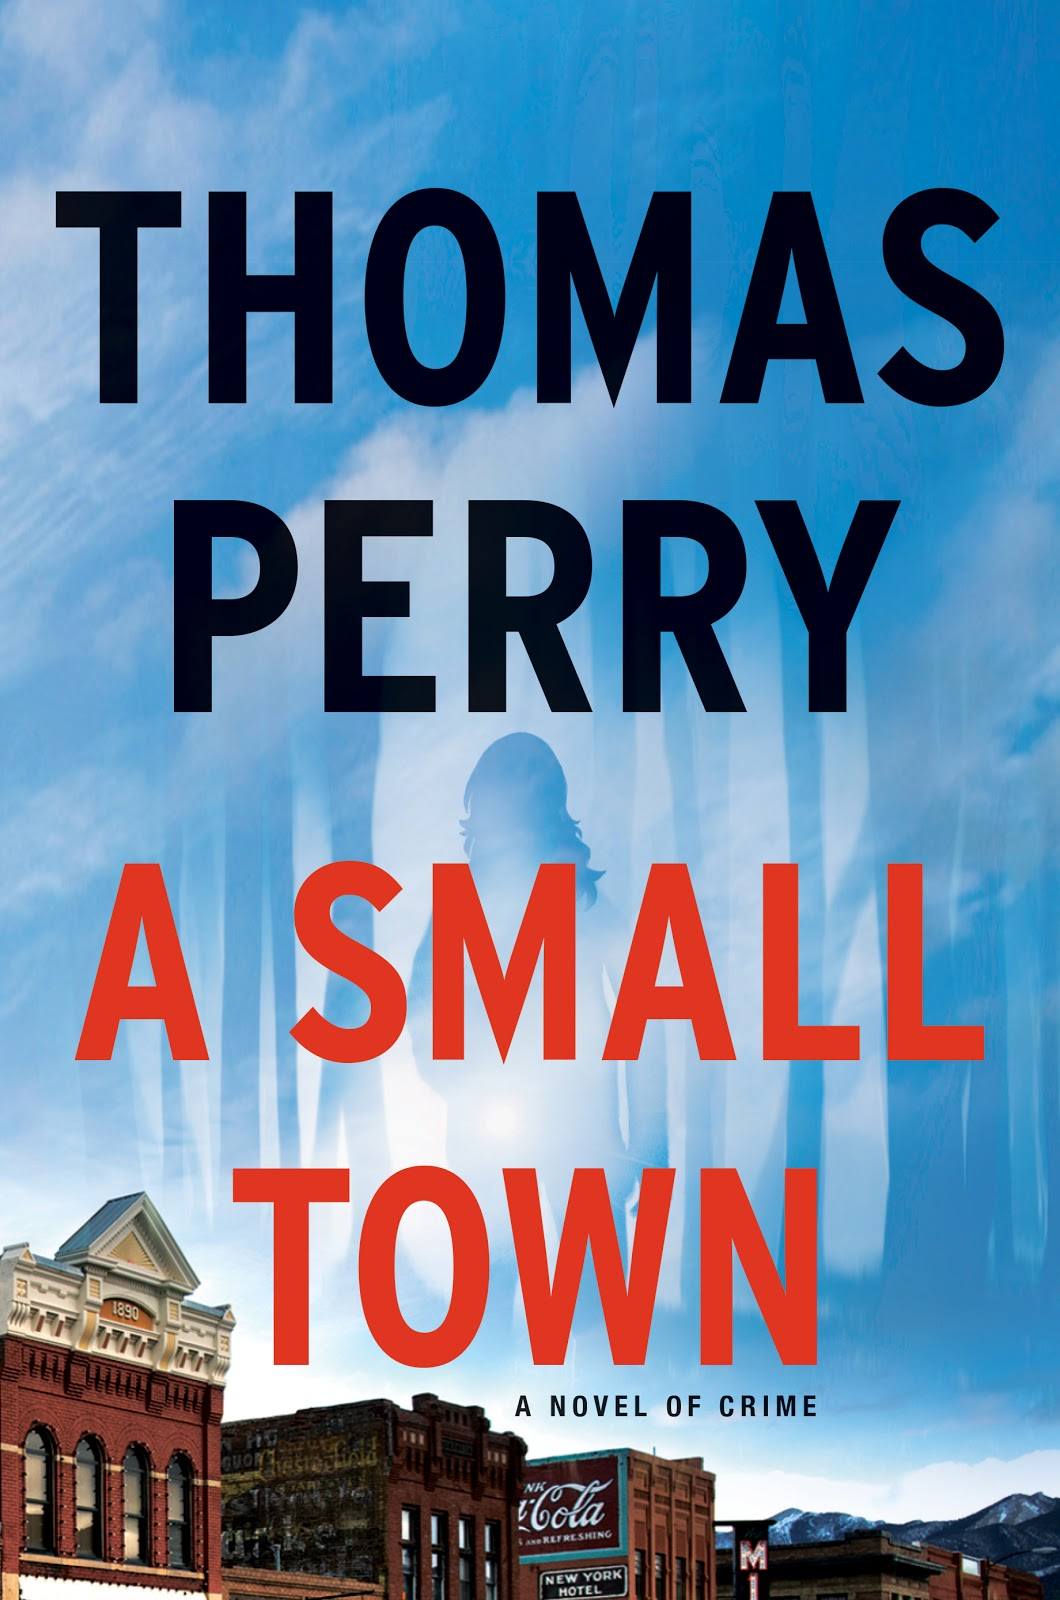 Thomas Perry A small town review, thrillers to read now